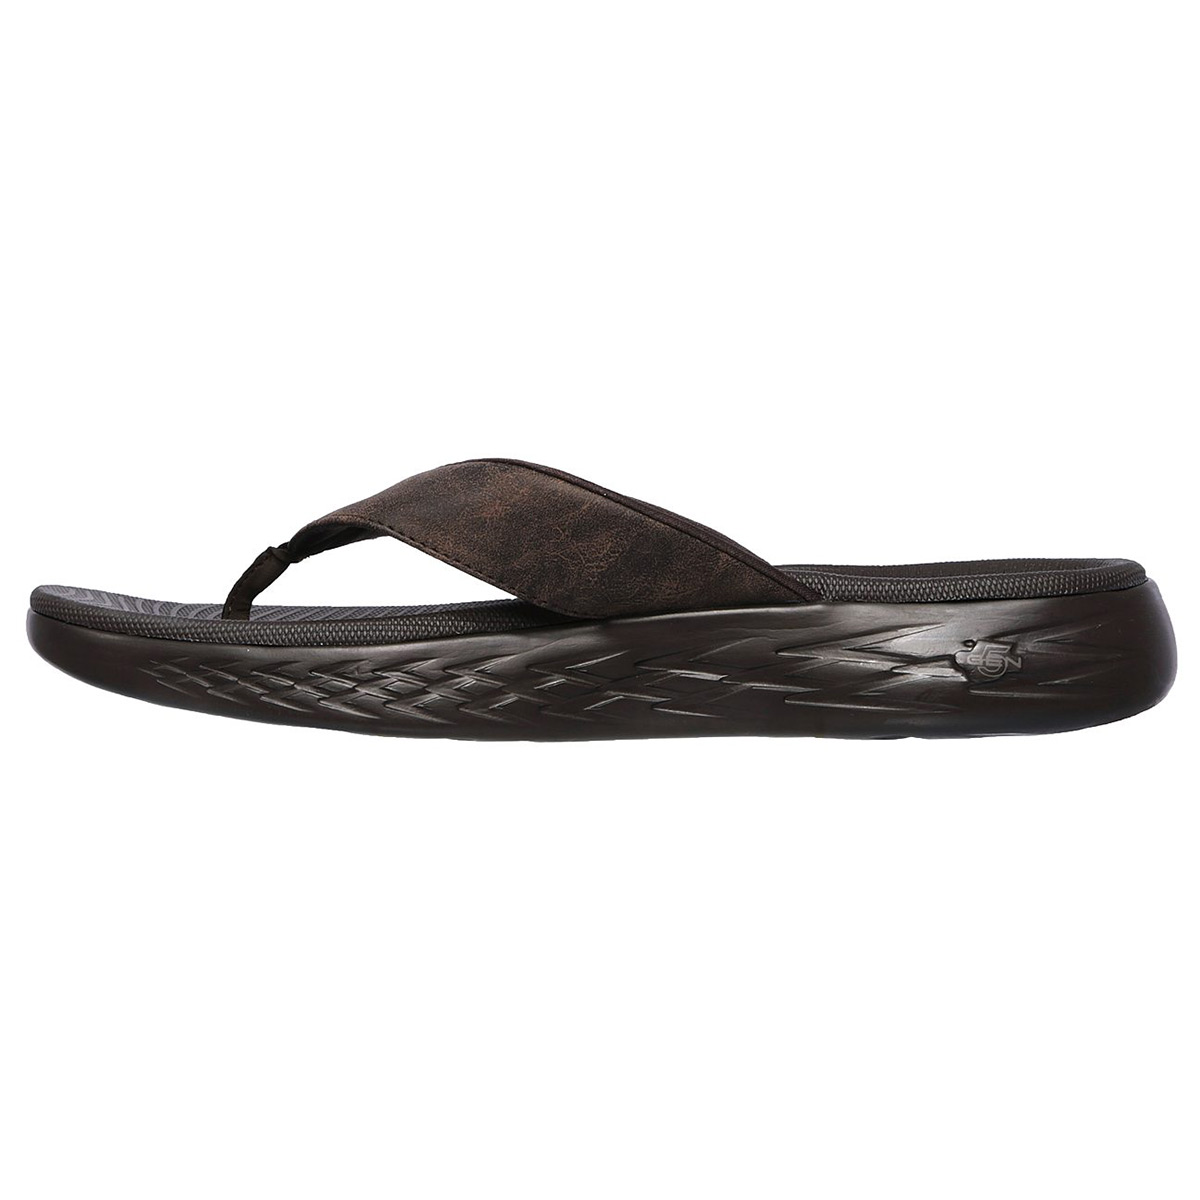 445c0ec6be3b Skechers 55352 On-the-go 600 Seaport - Choc (brown) Mens Sandals 44 EU.  About this product. Picture 1 of 4  Picture 2 of 4  Picture 3 of 4 ...